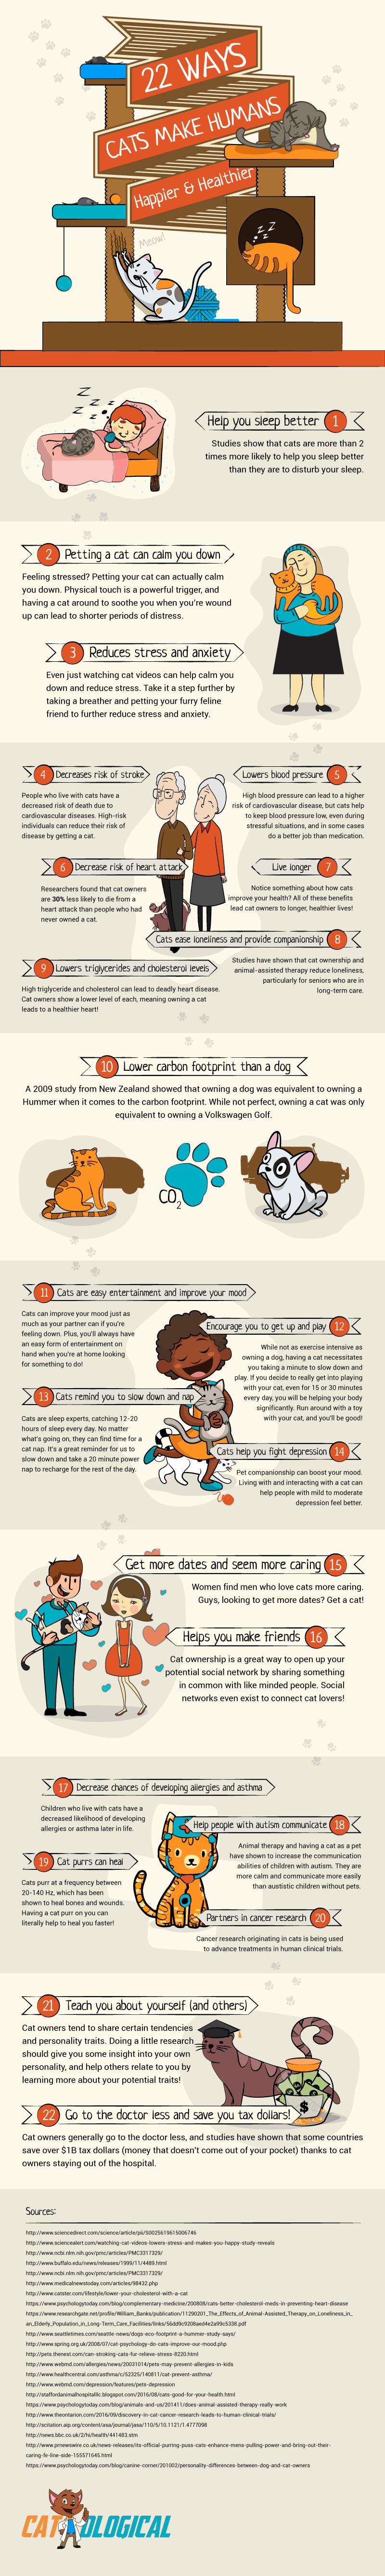 22_ways_cats_make_humans_happier_and_healthier